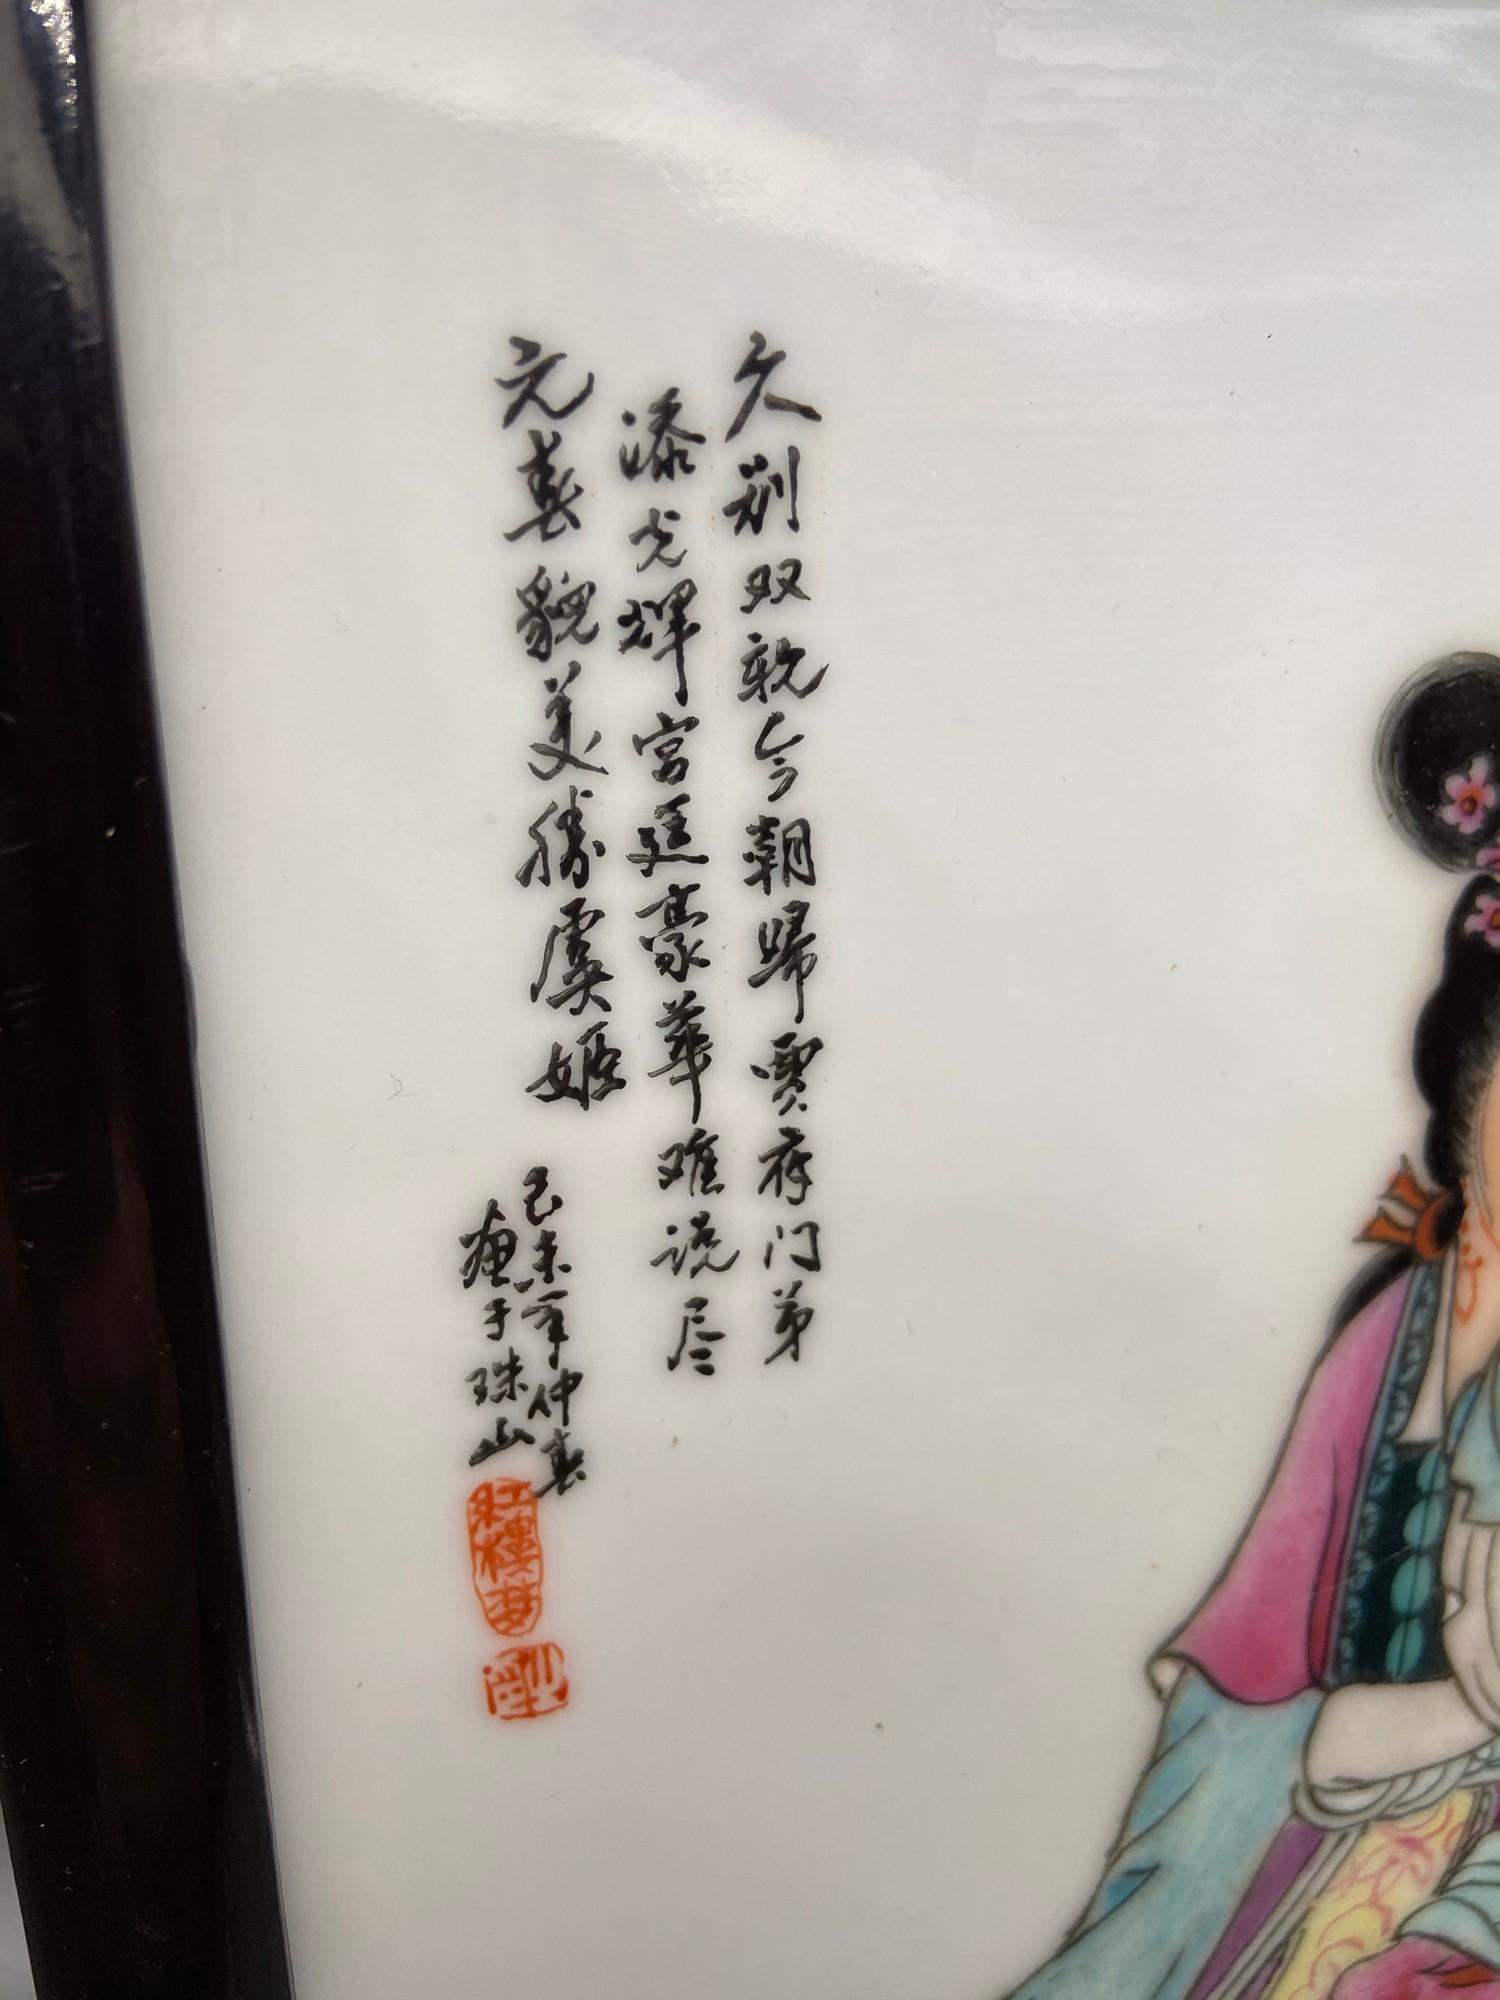 Lot 28 - A 20th century Chinese hand painted tile depicting Empress and hand maiden, signed by the artist.